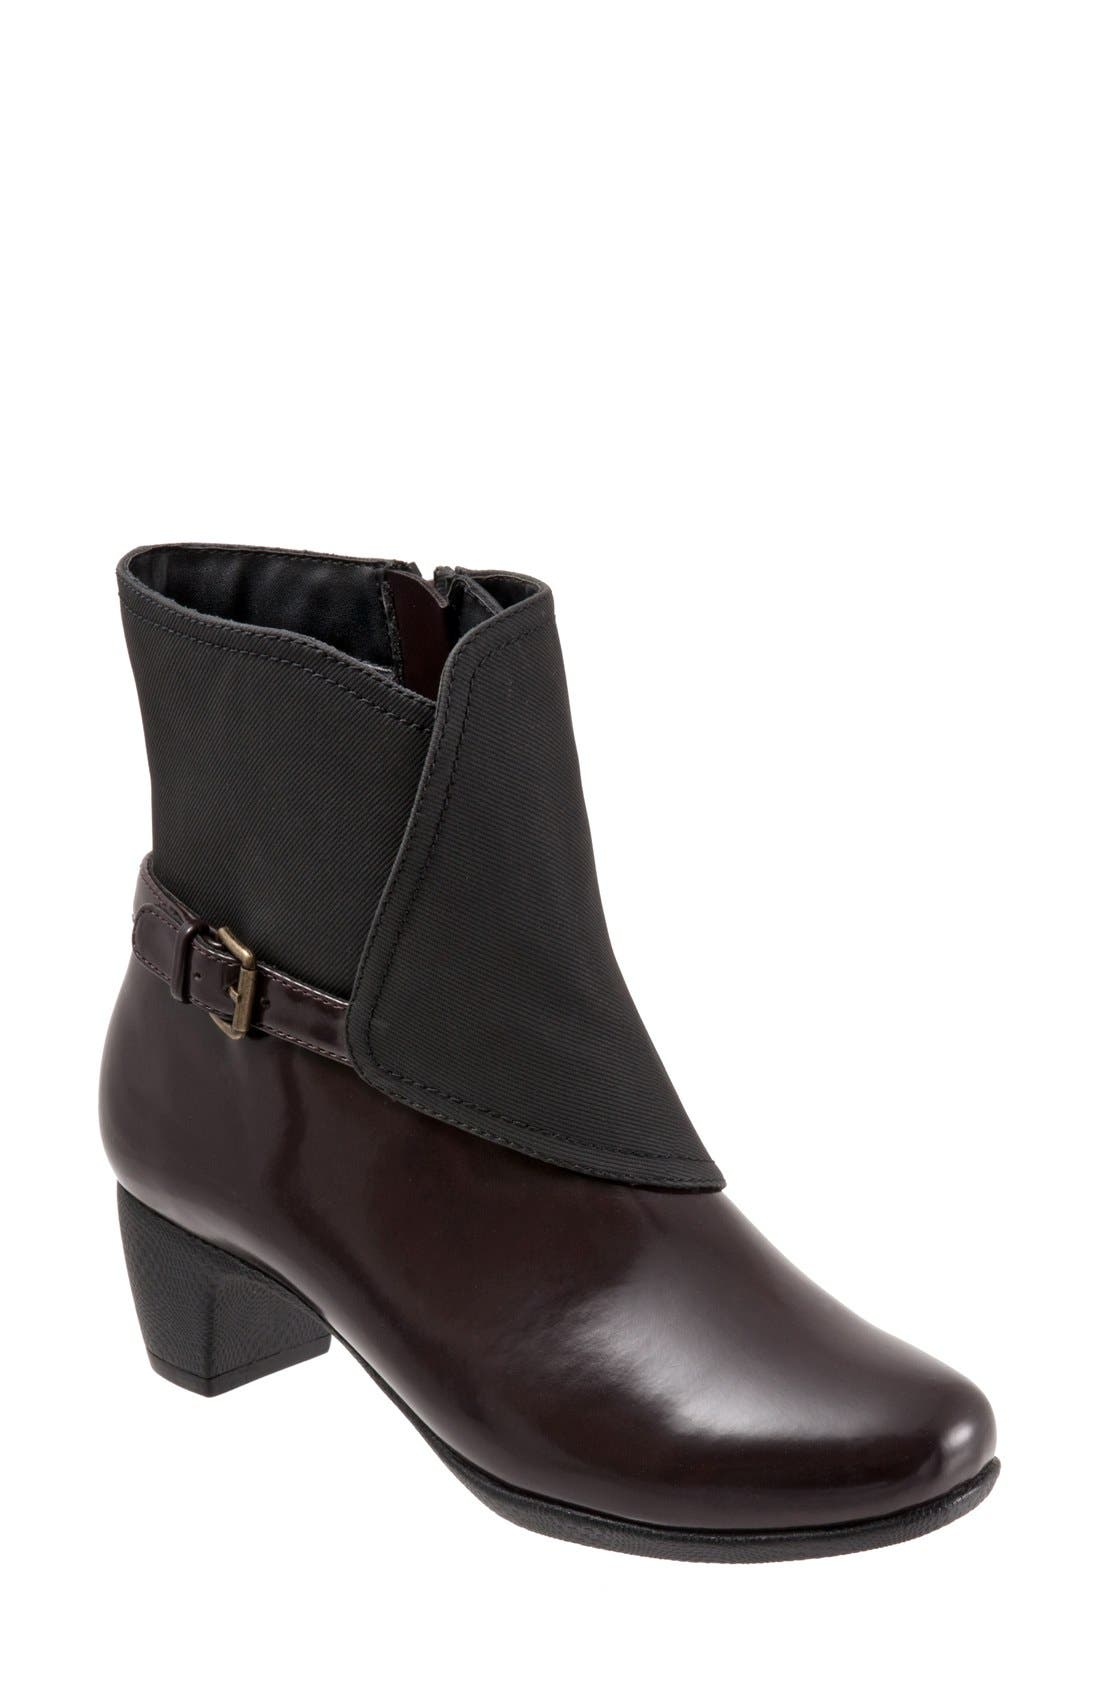 'Puddles' Waterproof Bootie,                             Main thumbnail 1, color,                             642